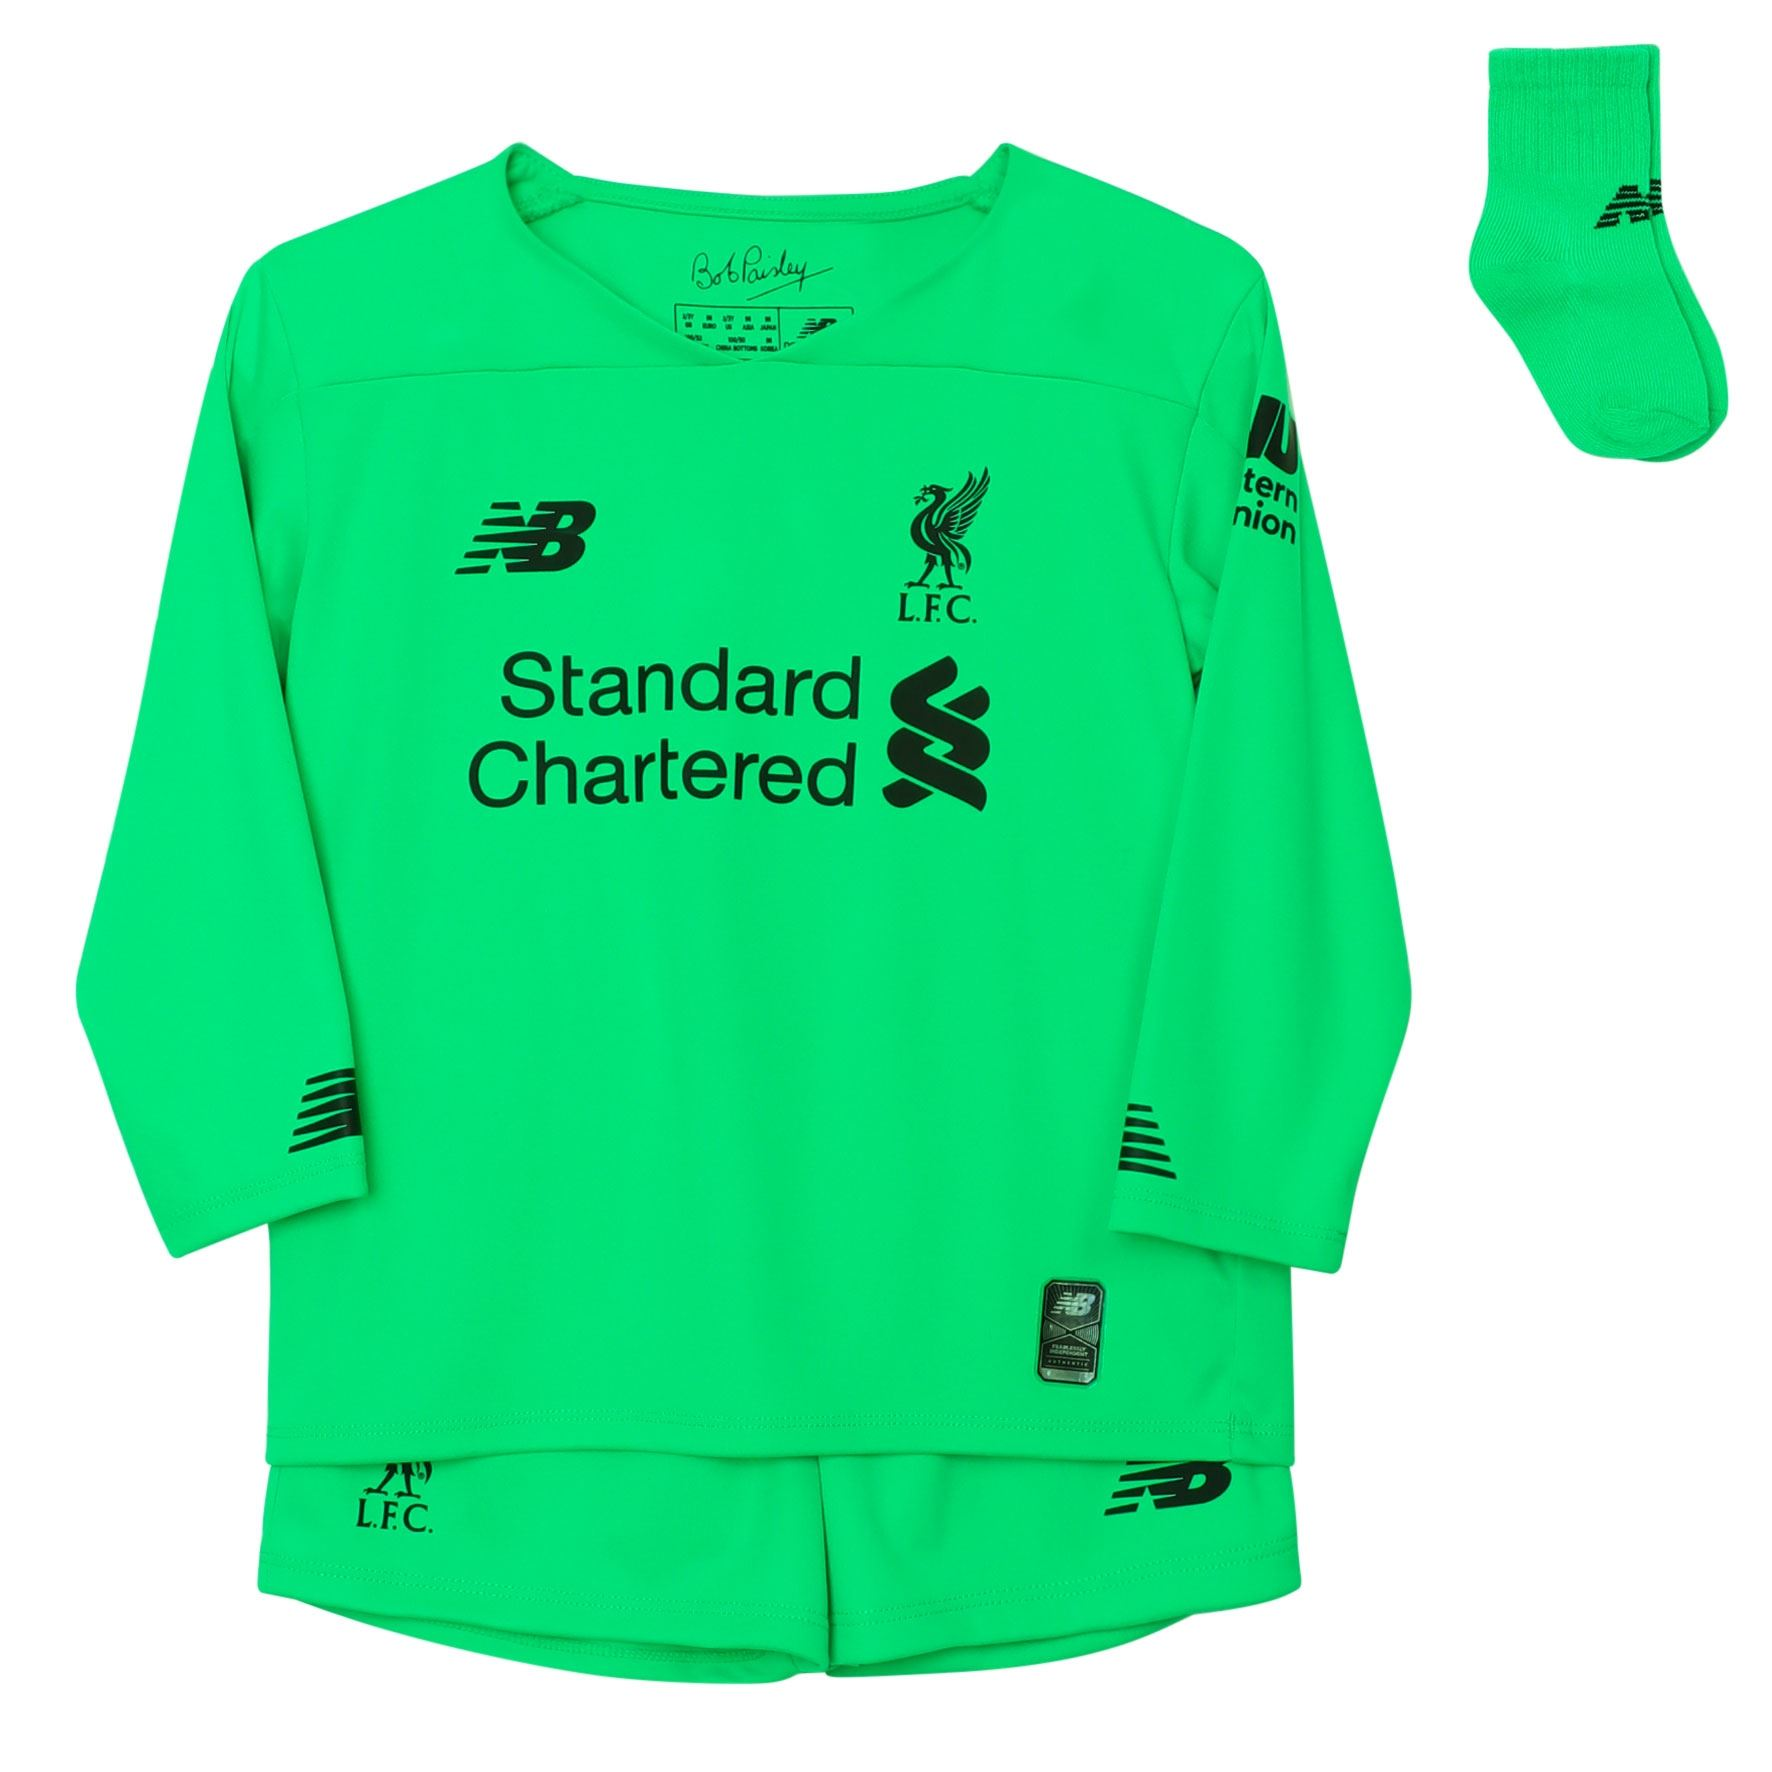 online retailer 0d08b ab4f2 Details about Liverpool FC Green Baby Boys Soccer Away Goalkeeper Kit 19/20  LFC Official